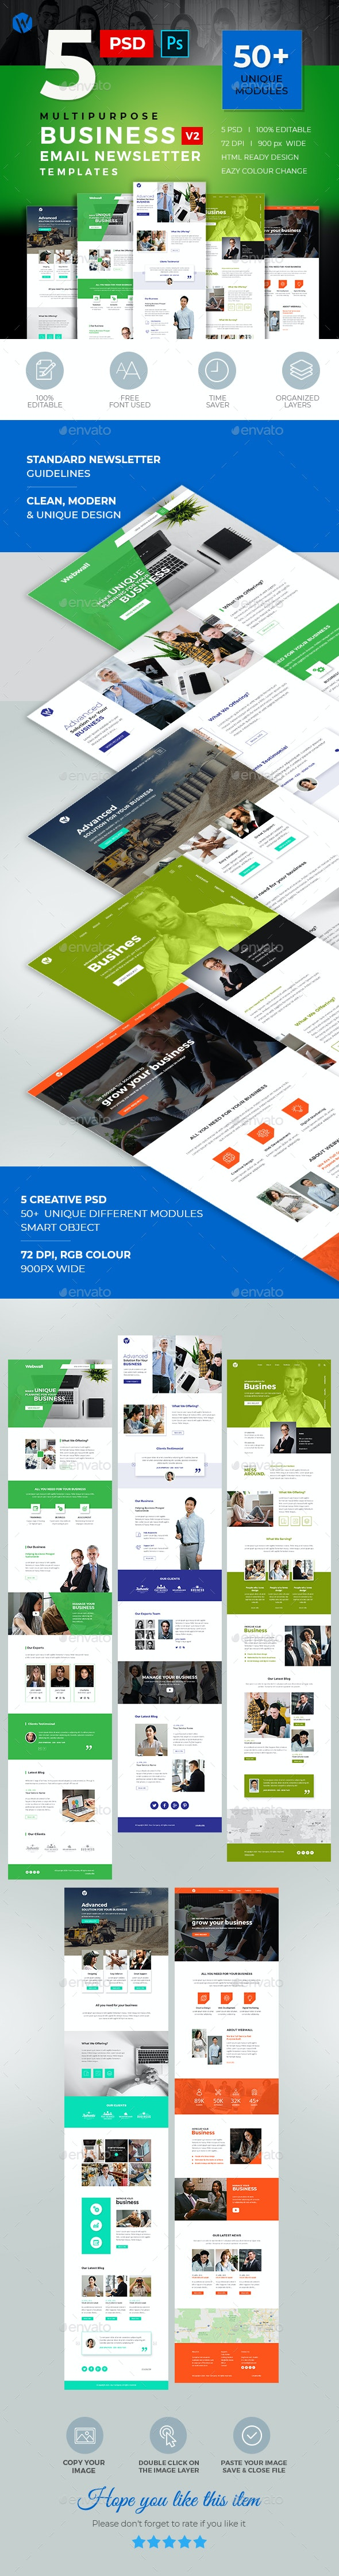 5 Business Email Newsletter PSD Templates v2 - E-newsletters Web Elements